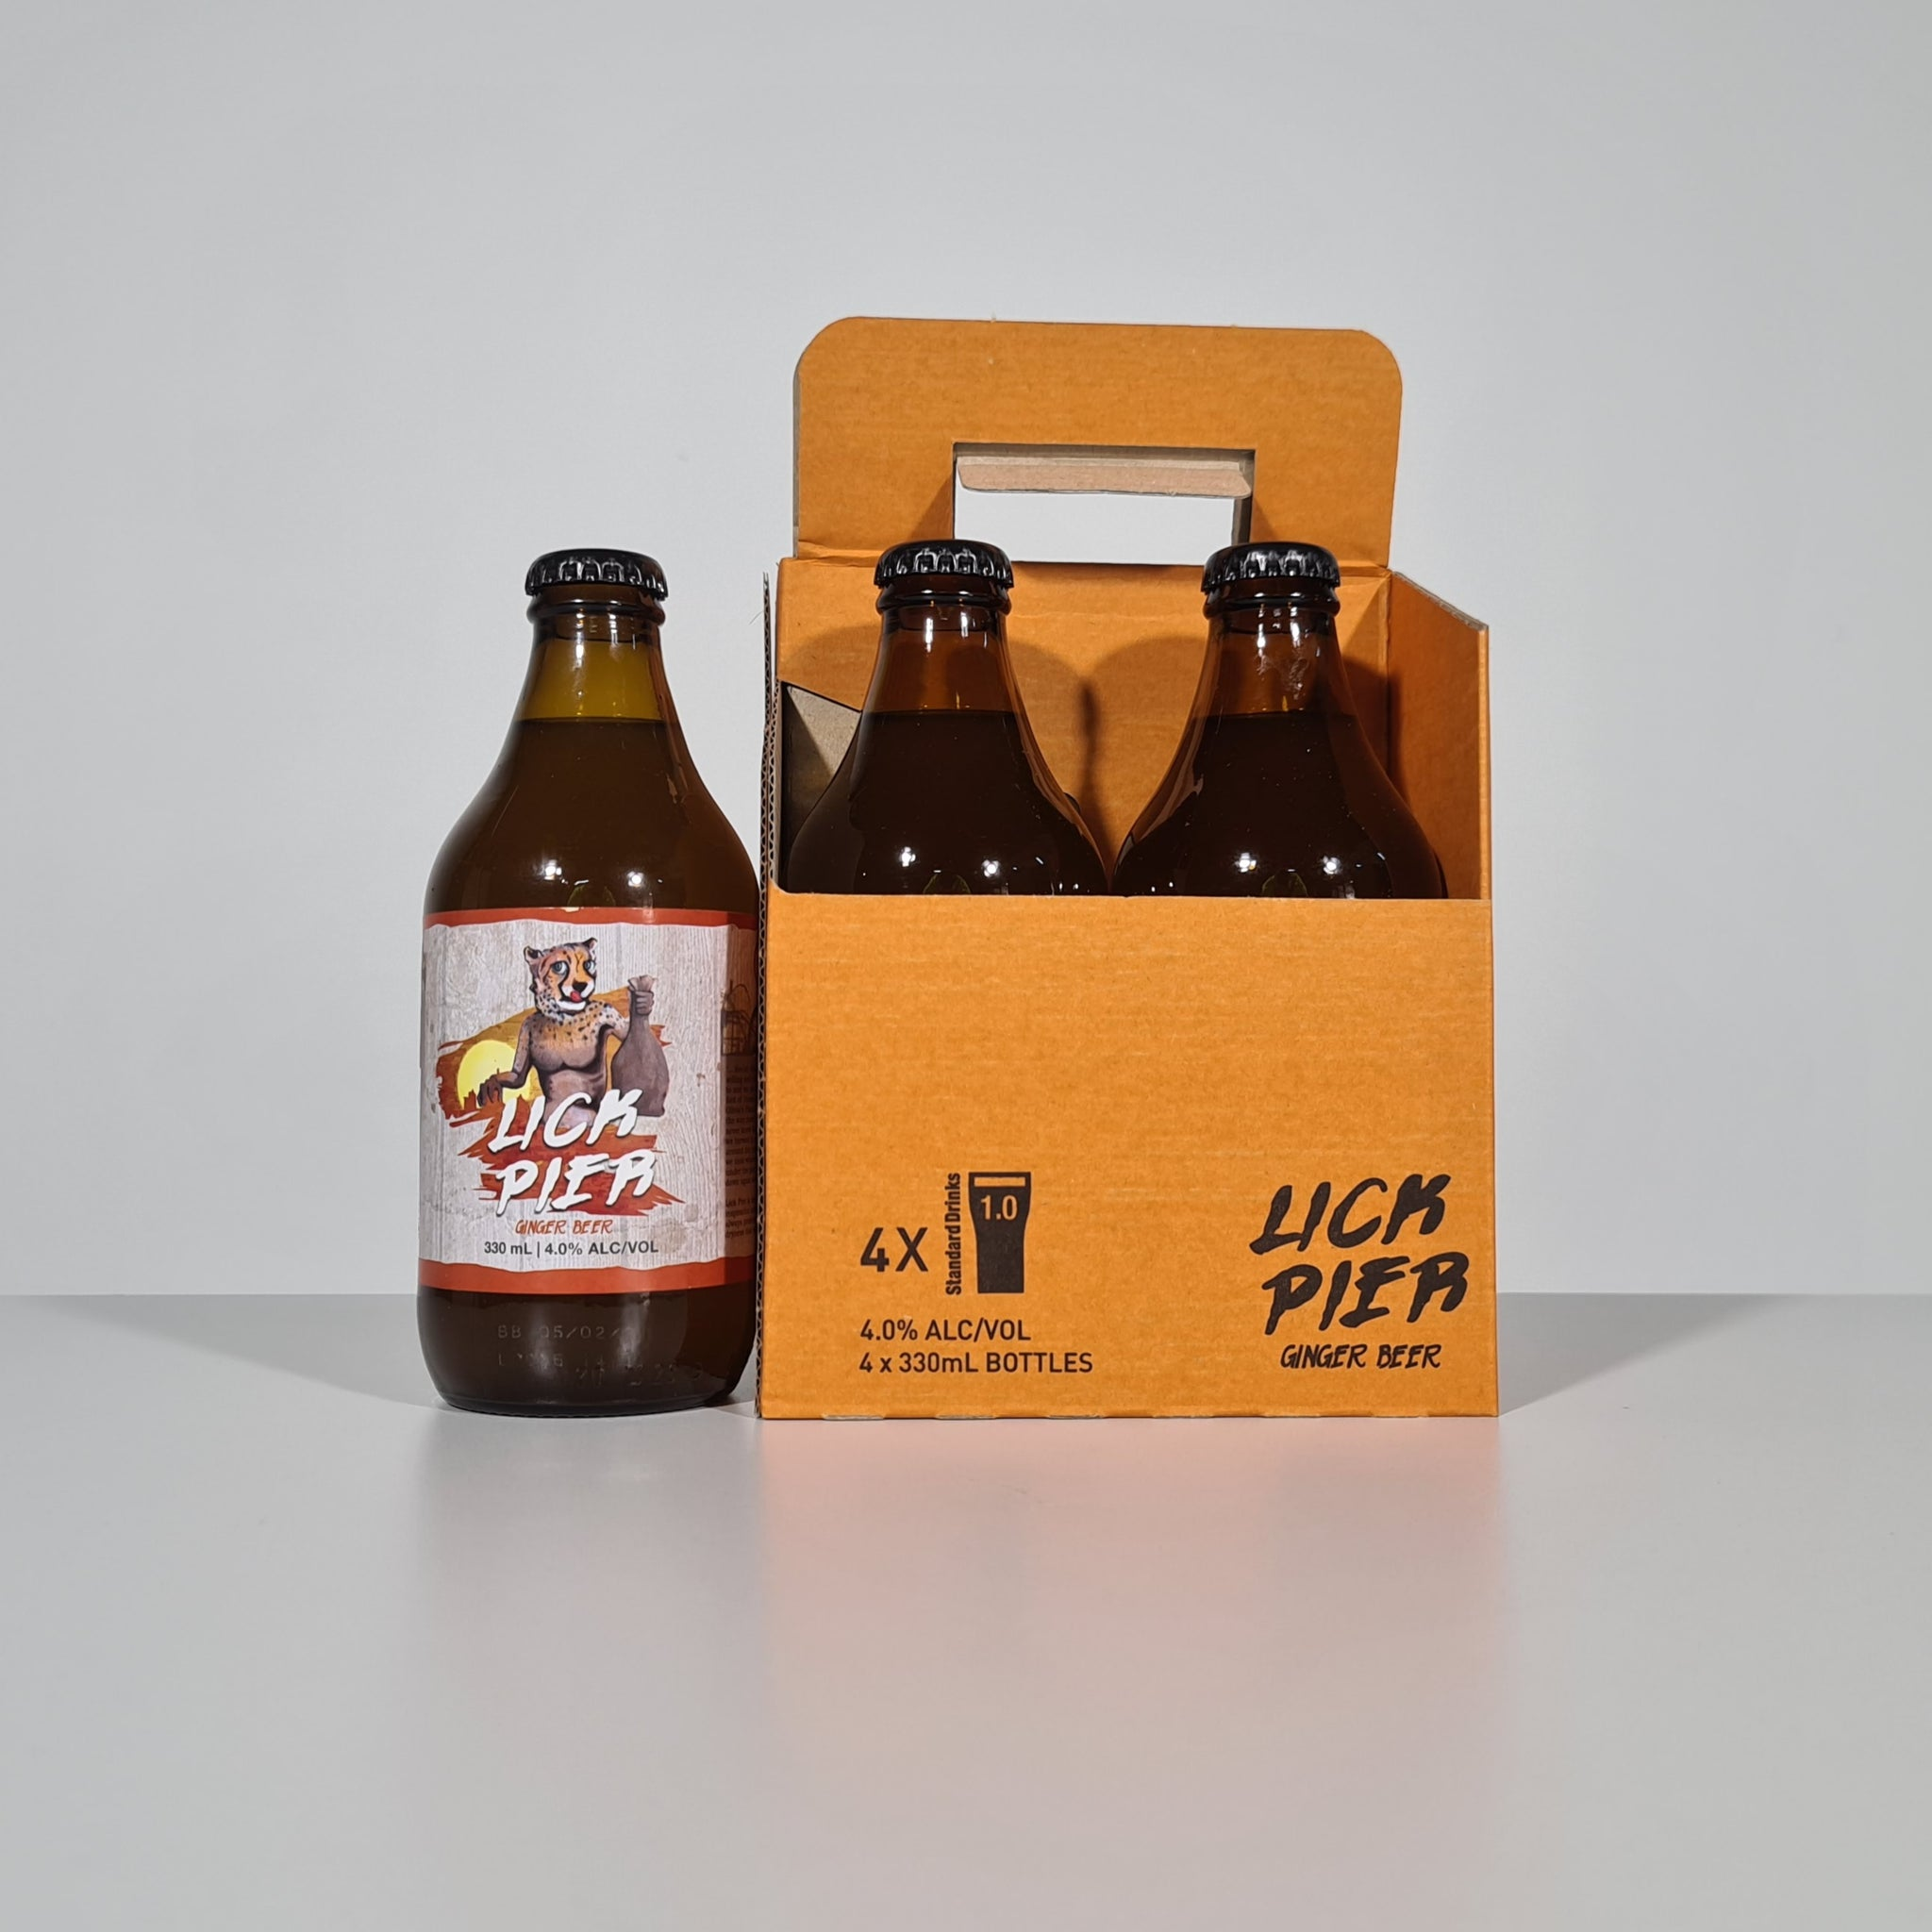 Lick Pier Ginger Beer 330ml